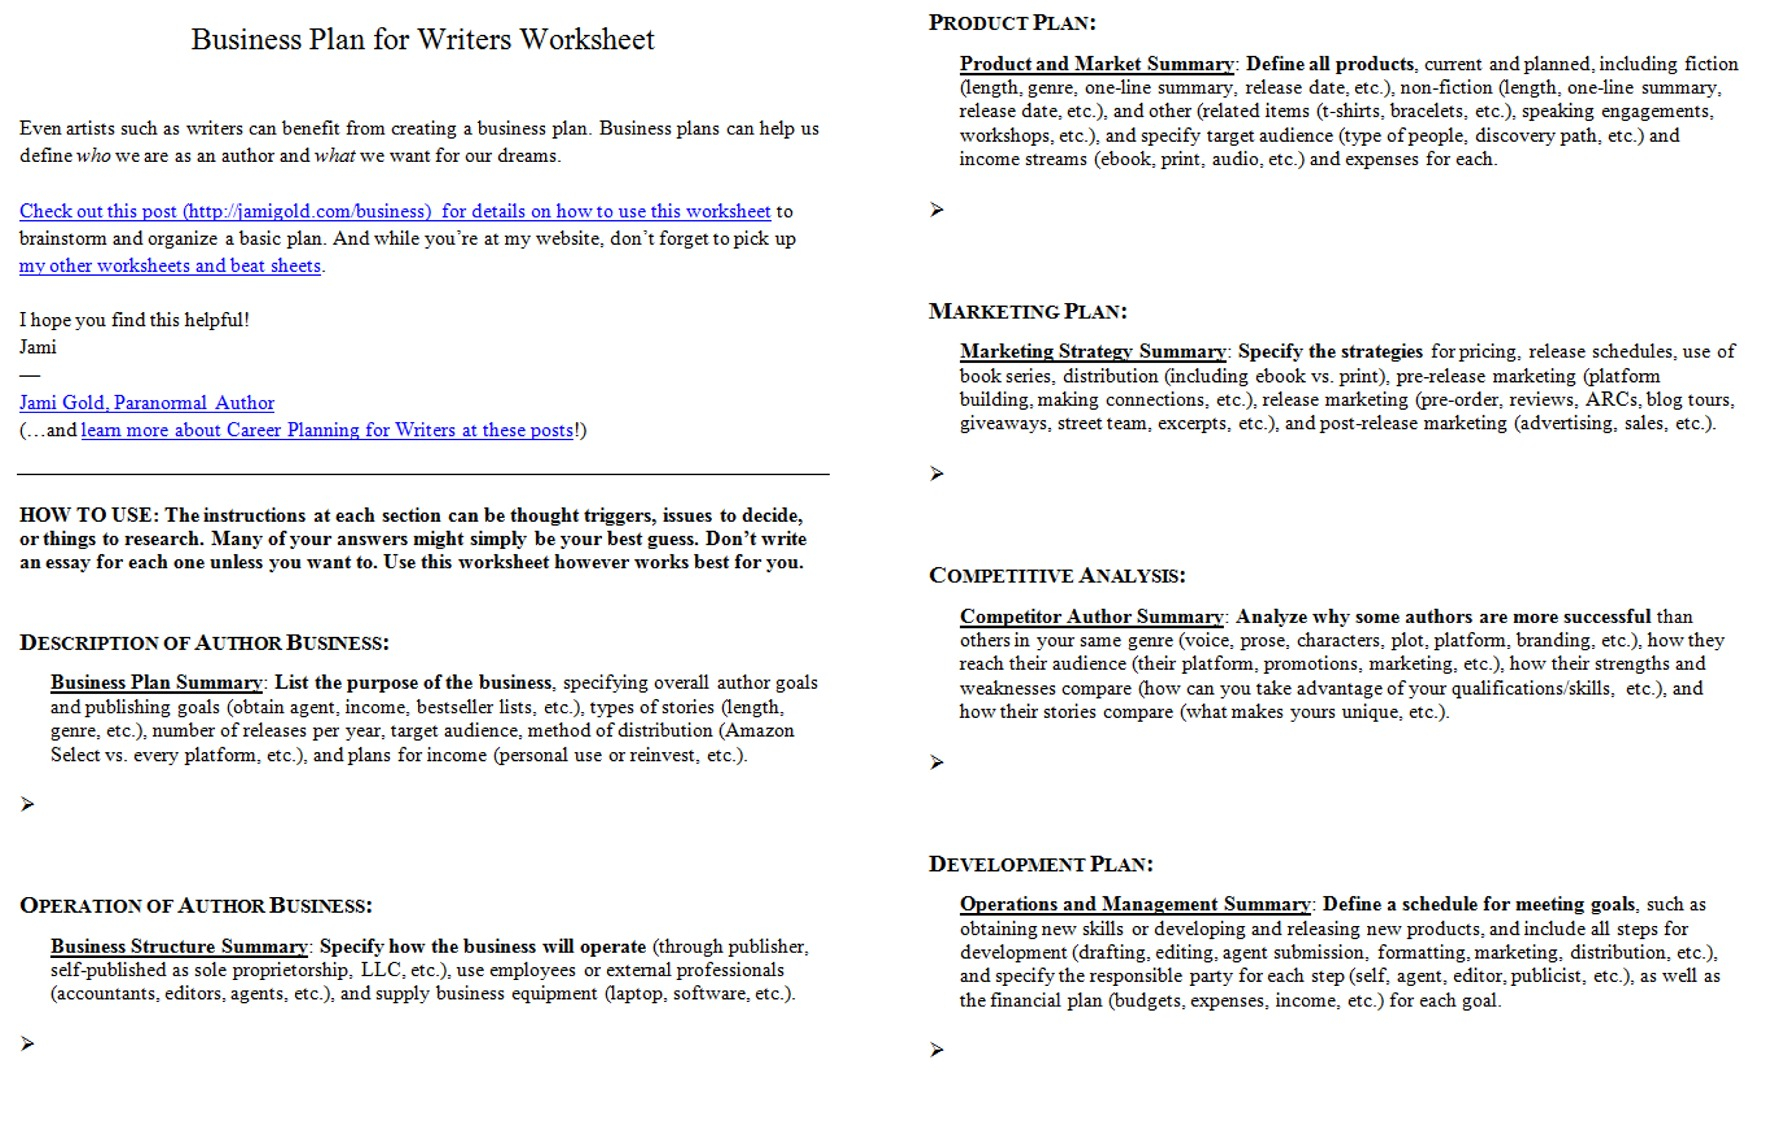 Weirdmailus  Picturesque Worksheets For Writers  Jami Gold Paranormal Author With Exciting Screen Shot Of Both Pages Of The Business Plan For Writers Worksheet With Easy On The Eye Plane Shapes Worksheets Also Adding And Subtracting Scientific Notation Worksheets In Addition Beginning Esl Worksheets And Solve For X Worksheet As Well As Us Government Worksheets Additionally Number  Worksheet From Jamigoldcom With Weirdmailus  Exciting Worksheets For Writers  Jami Gold Paranormal Author With Easy On The Eye Screen Shot Of Both Pages Of The Business Plan For Writers Worksheet And Picturesque Plane Shapes Worksheets Also Adding And Subtracting Scientific Notation Worksheets In Addition Beginning Esl Worksheets From Jamigoldcom